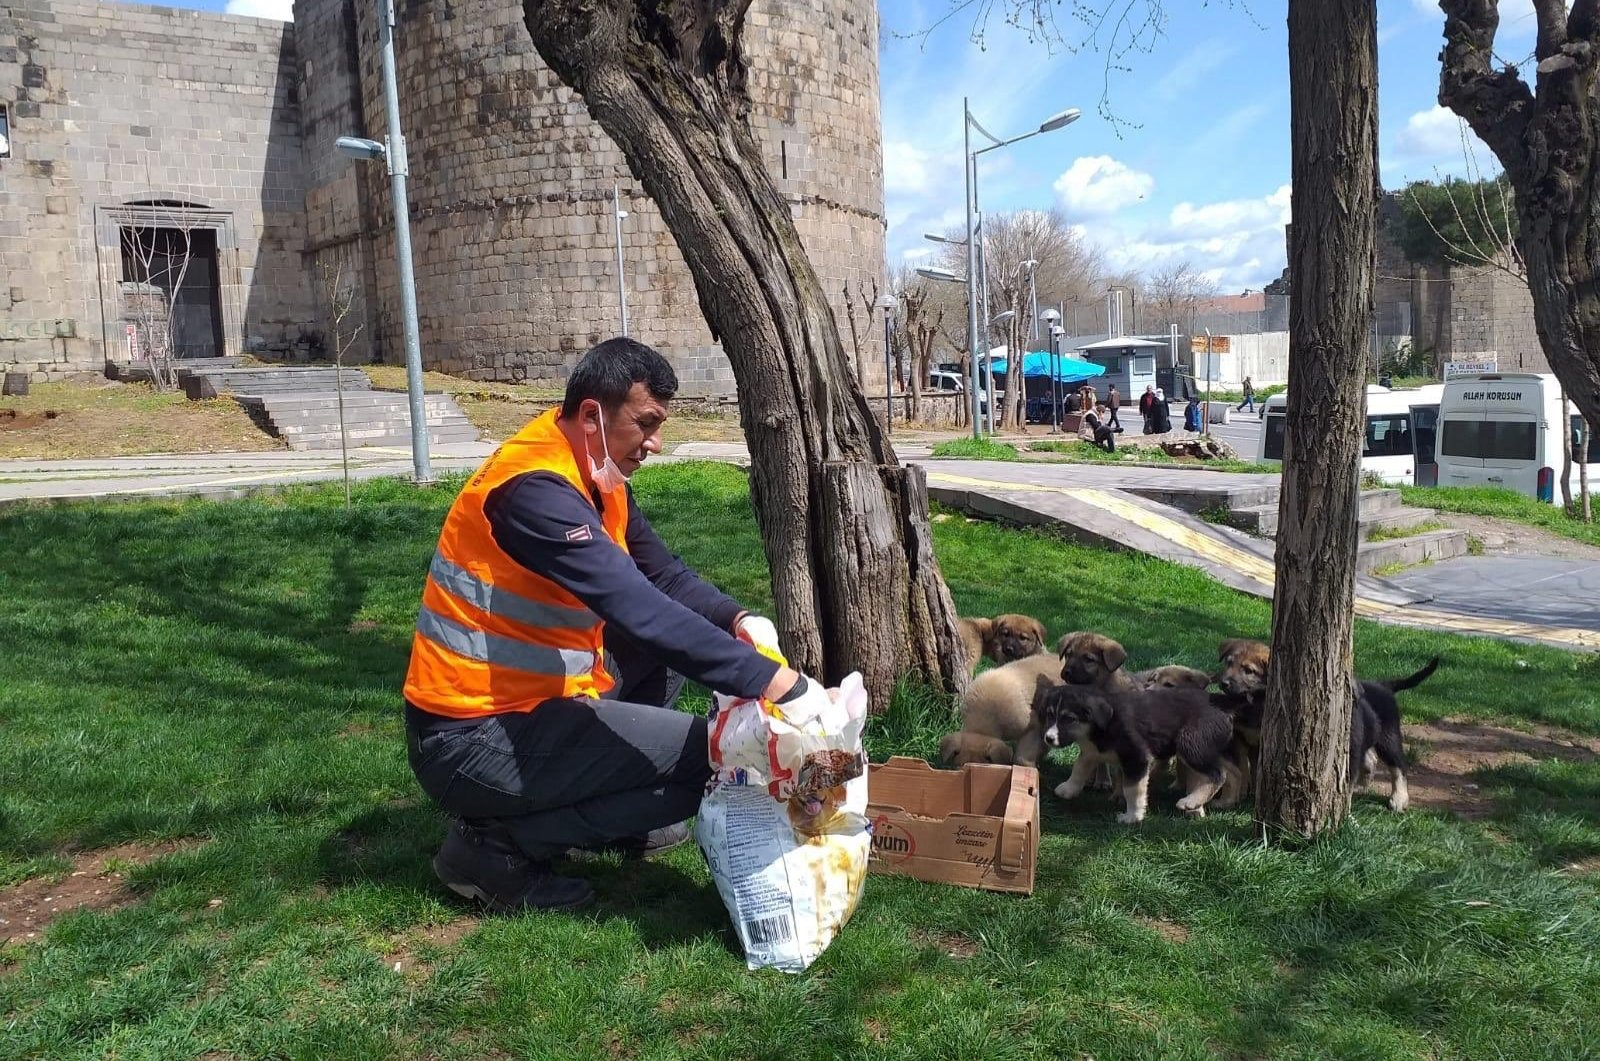 A municipal worker feeds stray puppies in a grassy area of Diyarbakır, Turkey, Sunday, April 5, 2020. (İHA Photo)